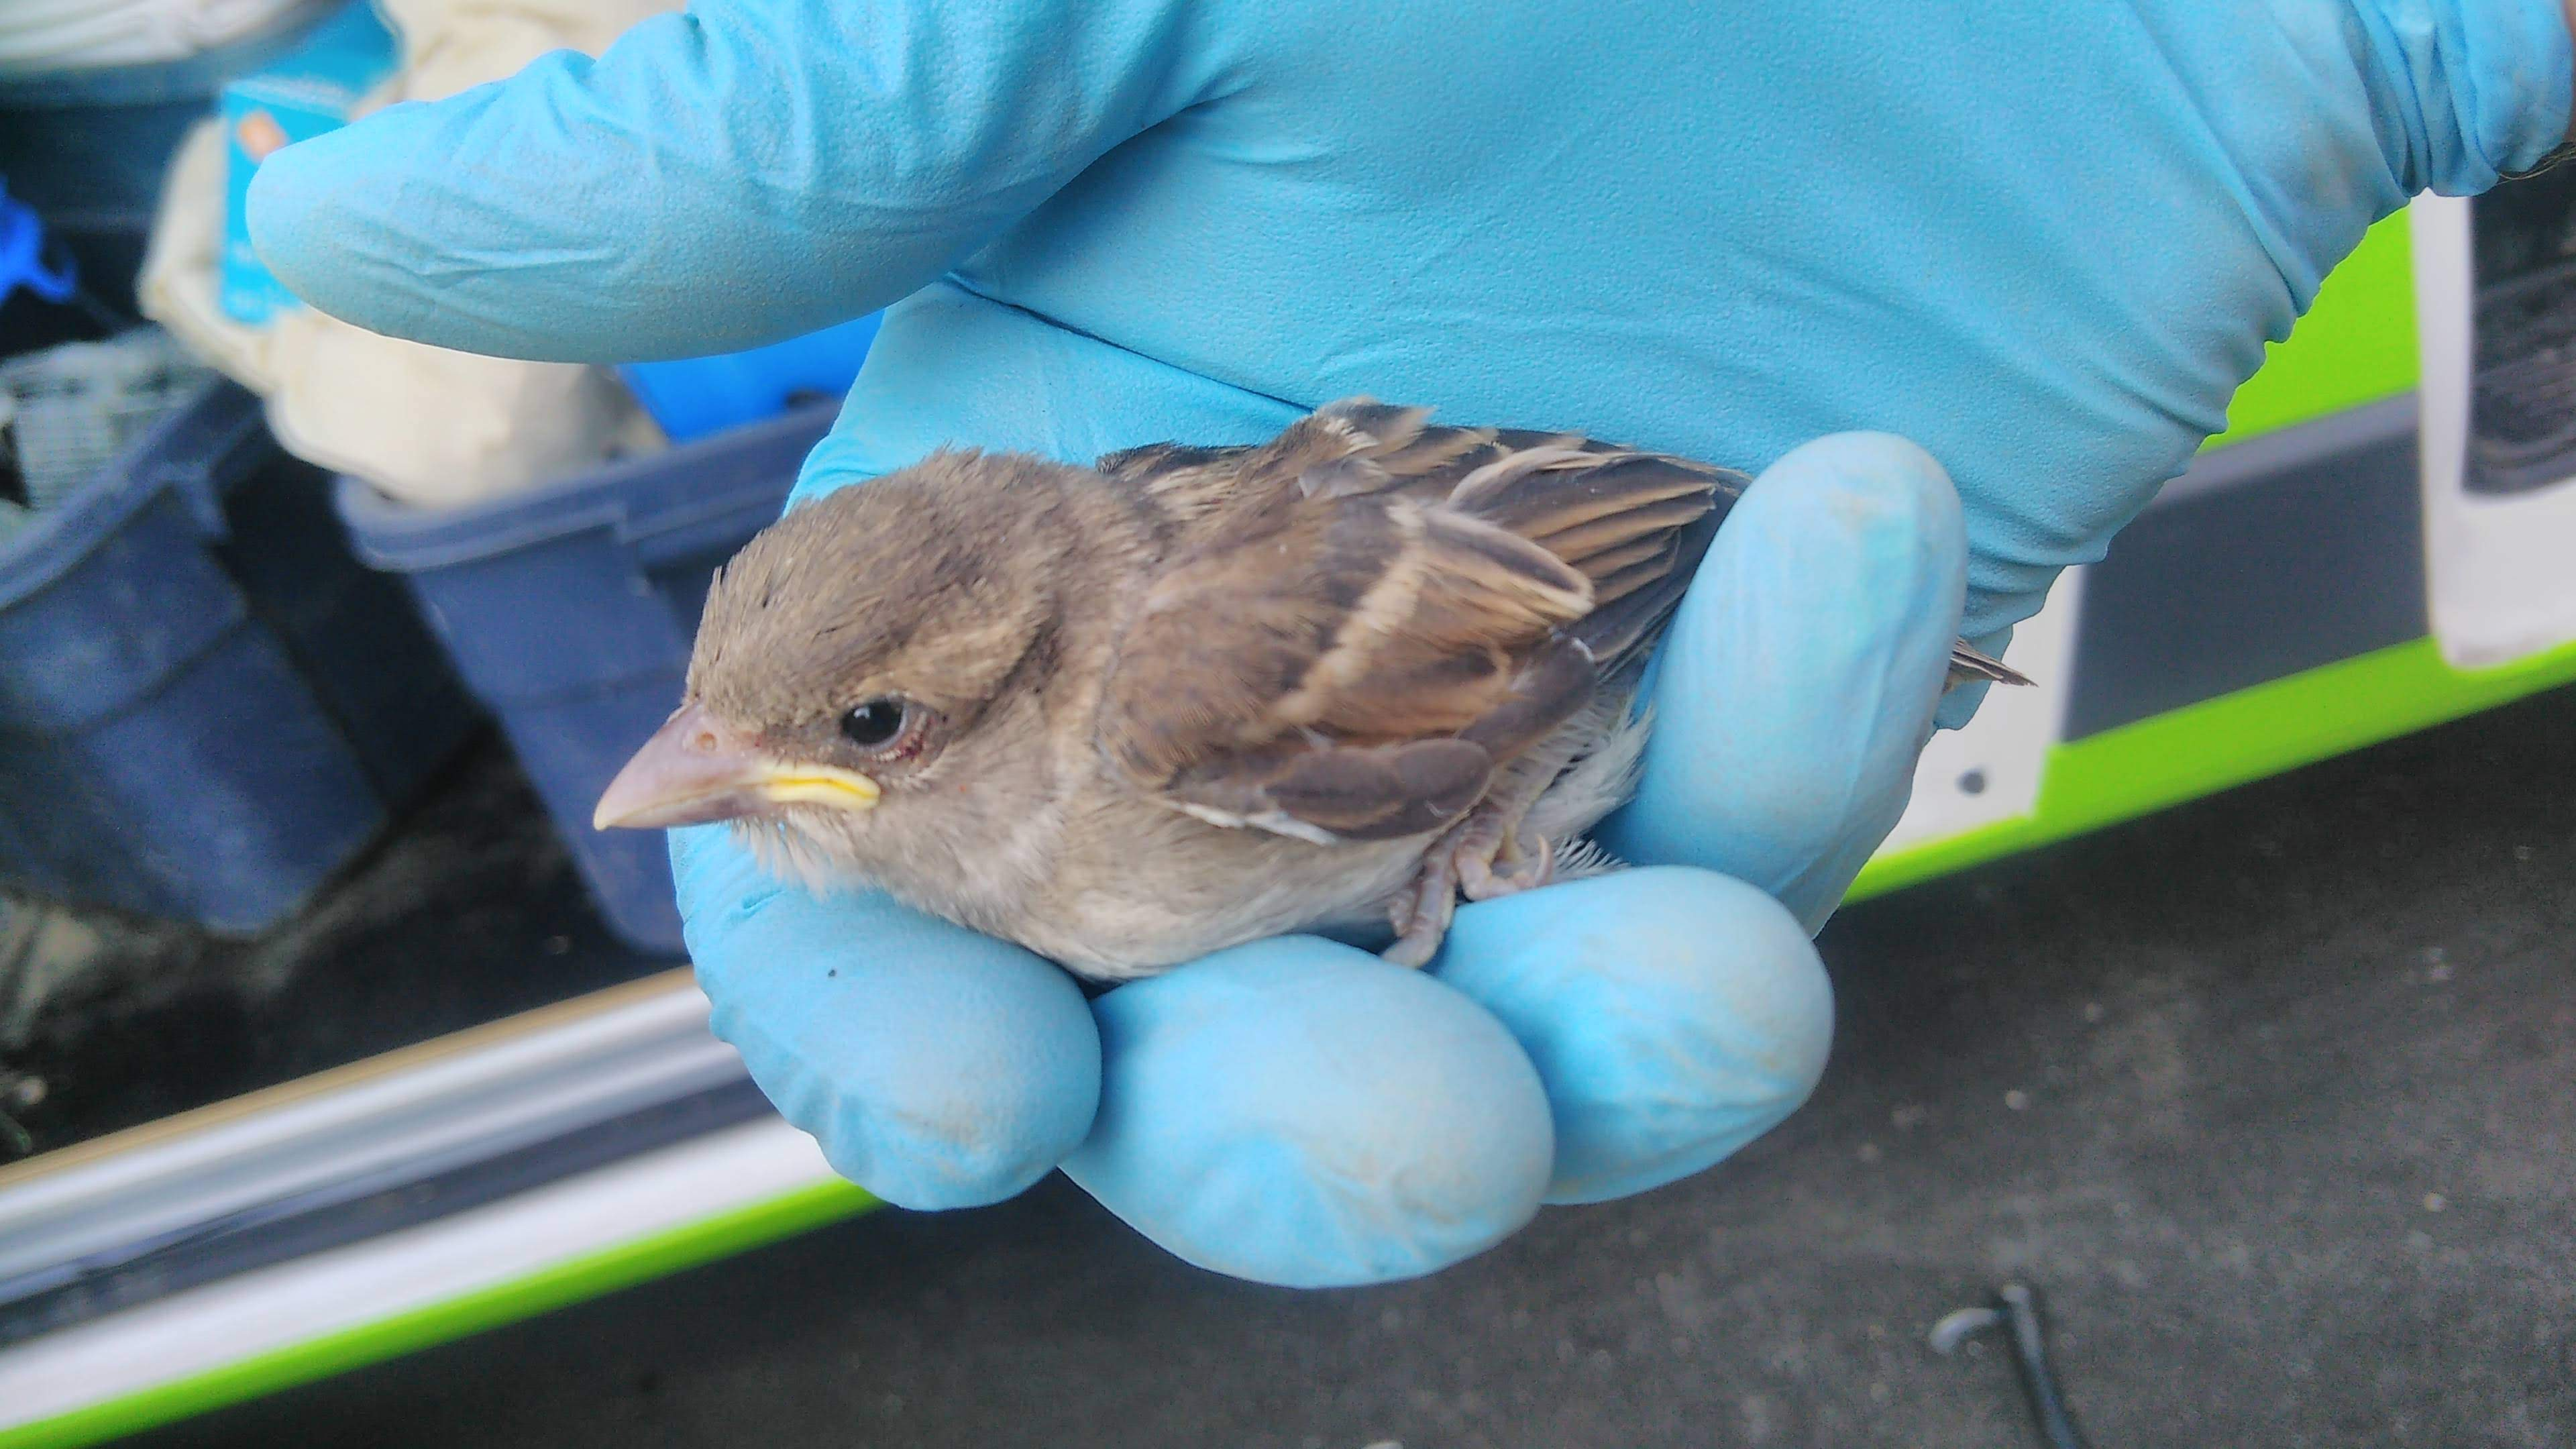 worker save a sparrow